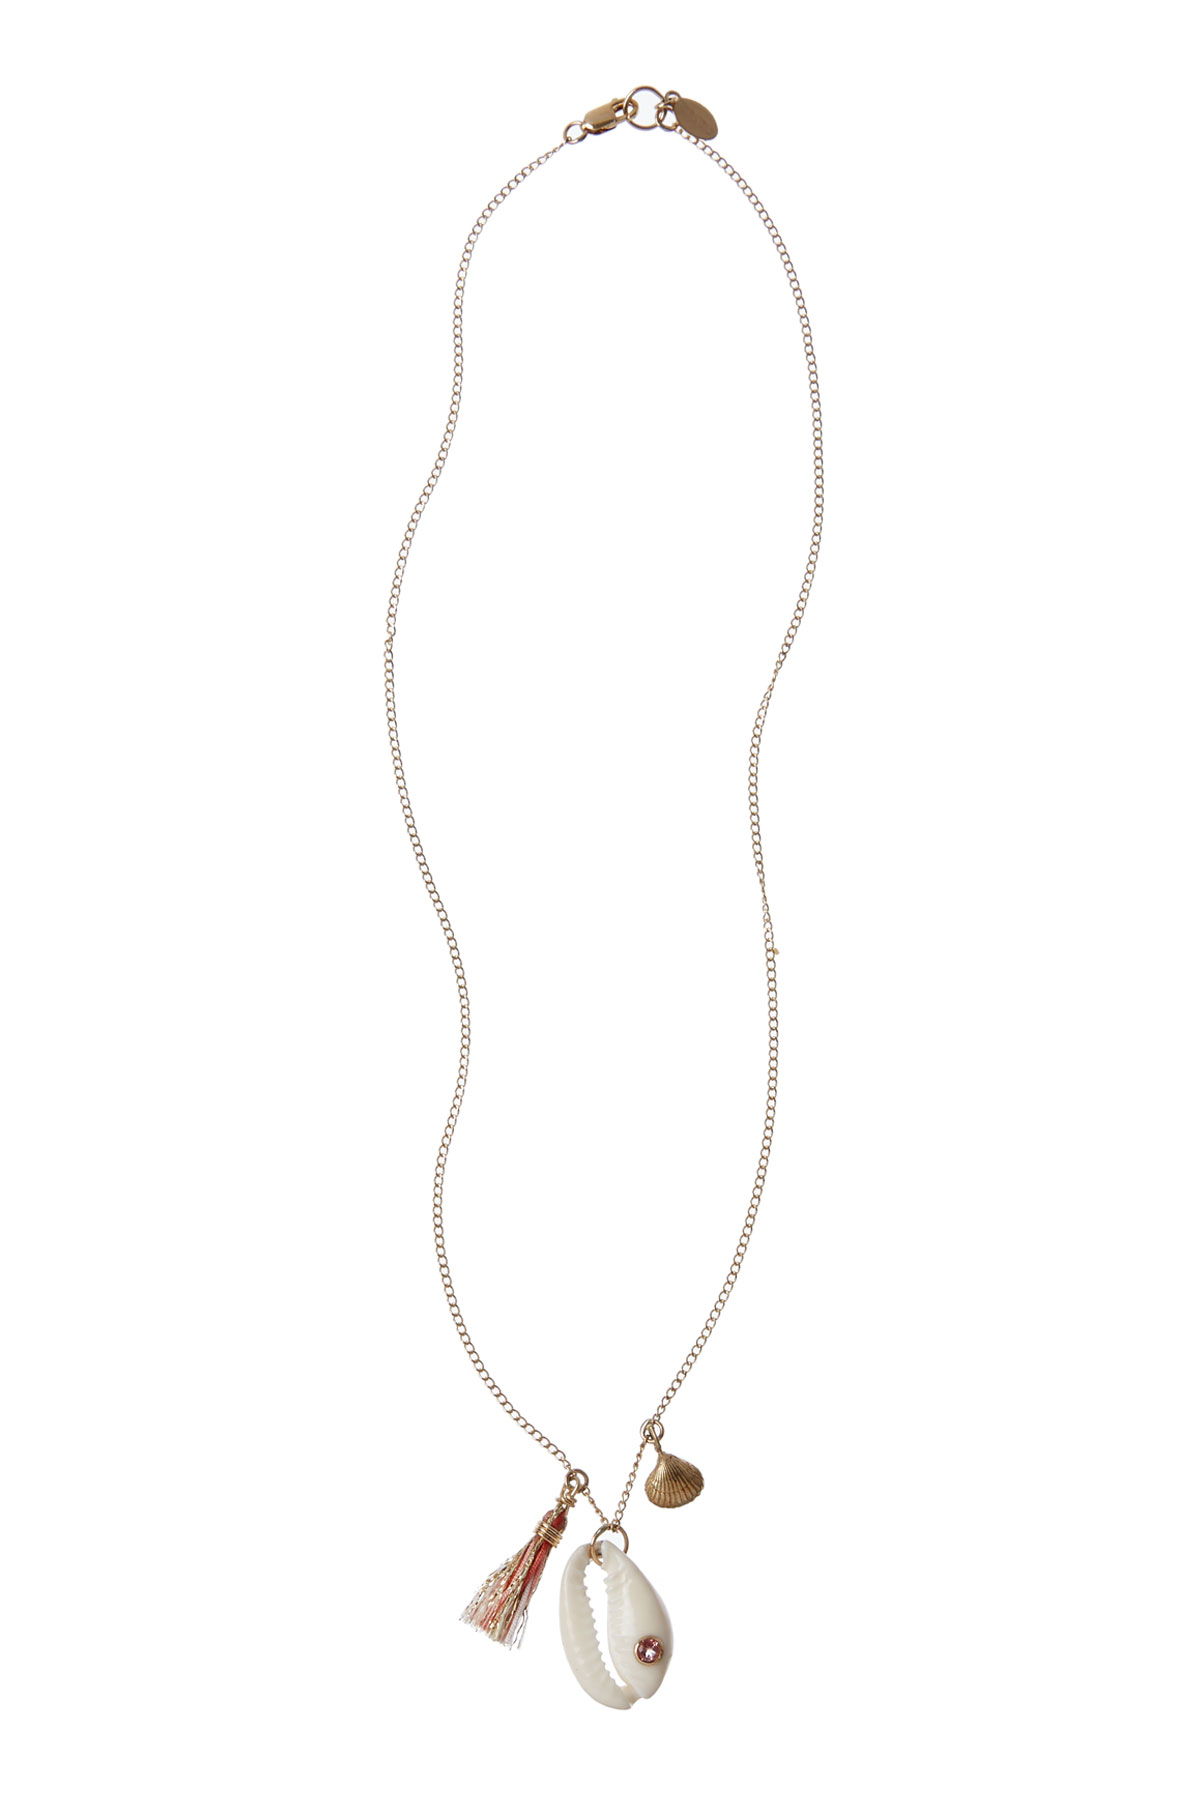 Exclusive Cowrie Charm Necklace - Blush 1